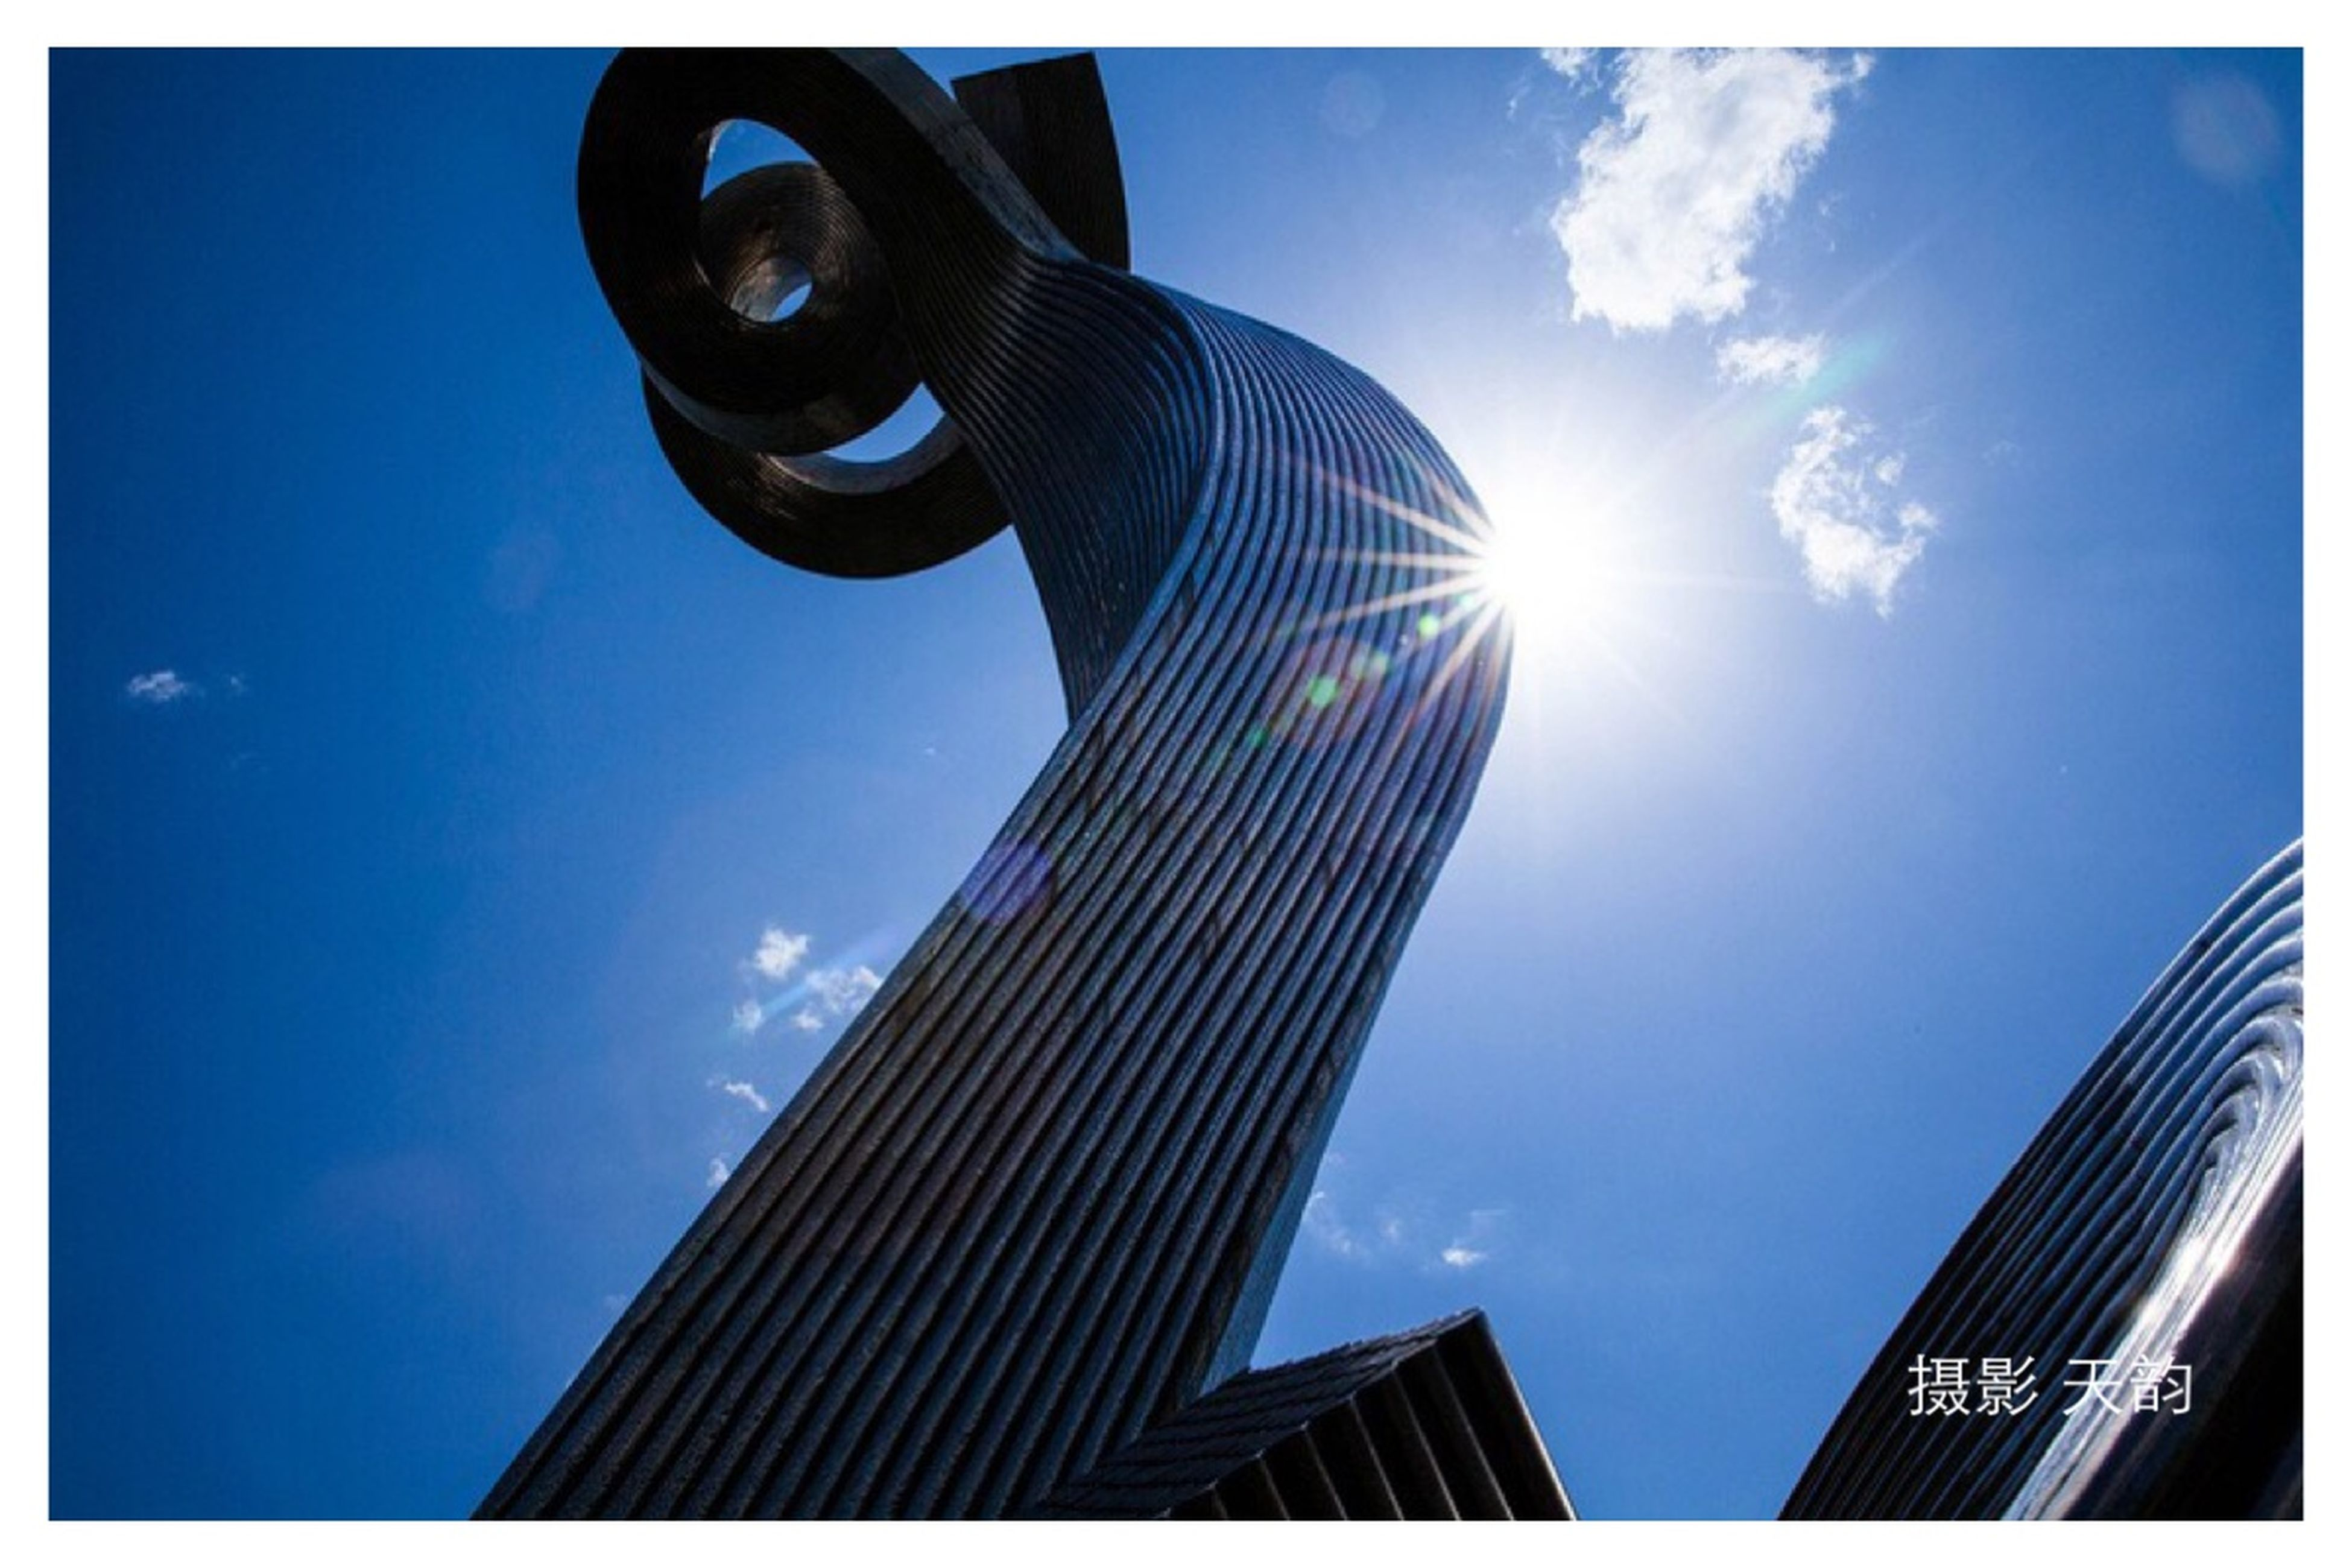 low angle view, architecture, built structure, building exterior, transfer print, sky, blue, auto post production filter, sunlight, cloud, cloud - sky, modern, city, sunbeam, tall - high, street light, building, day, sun, outdoors